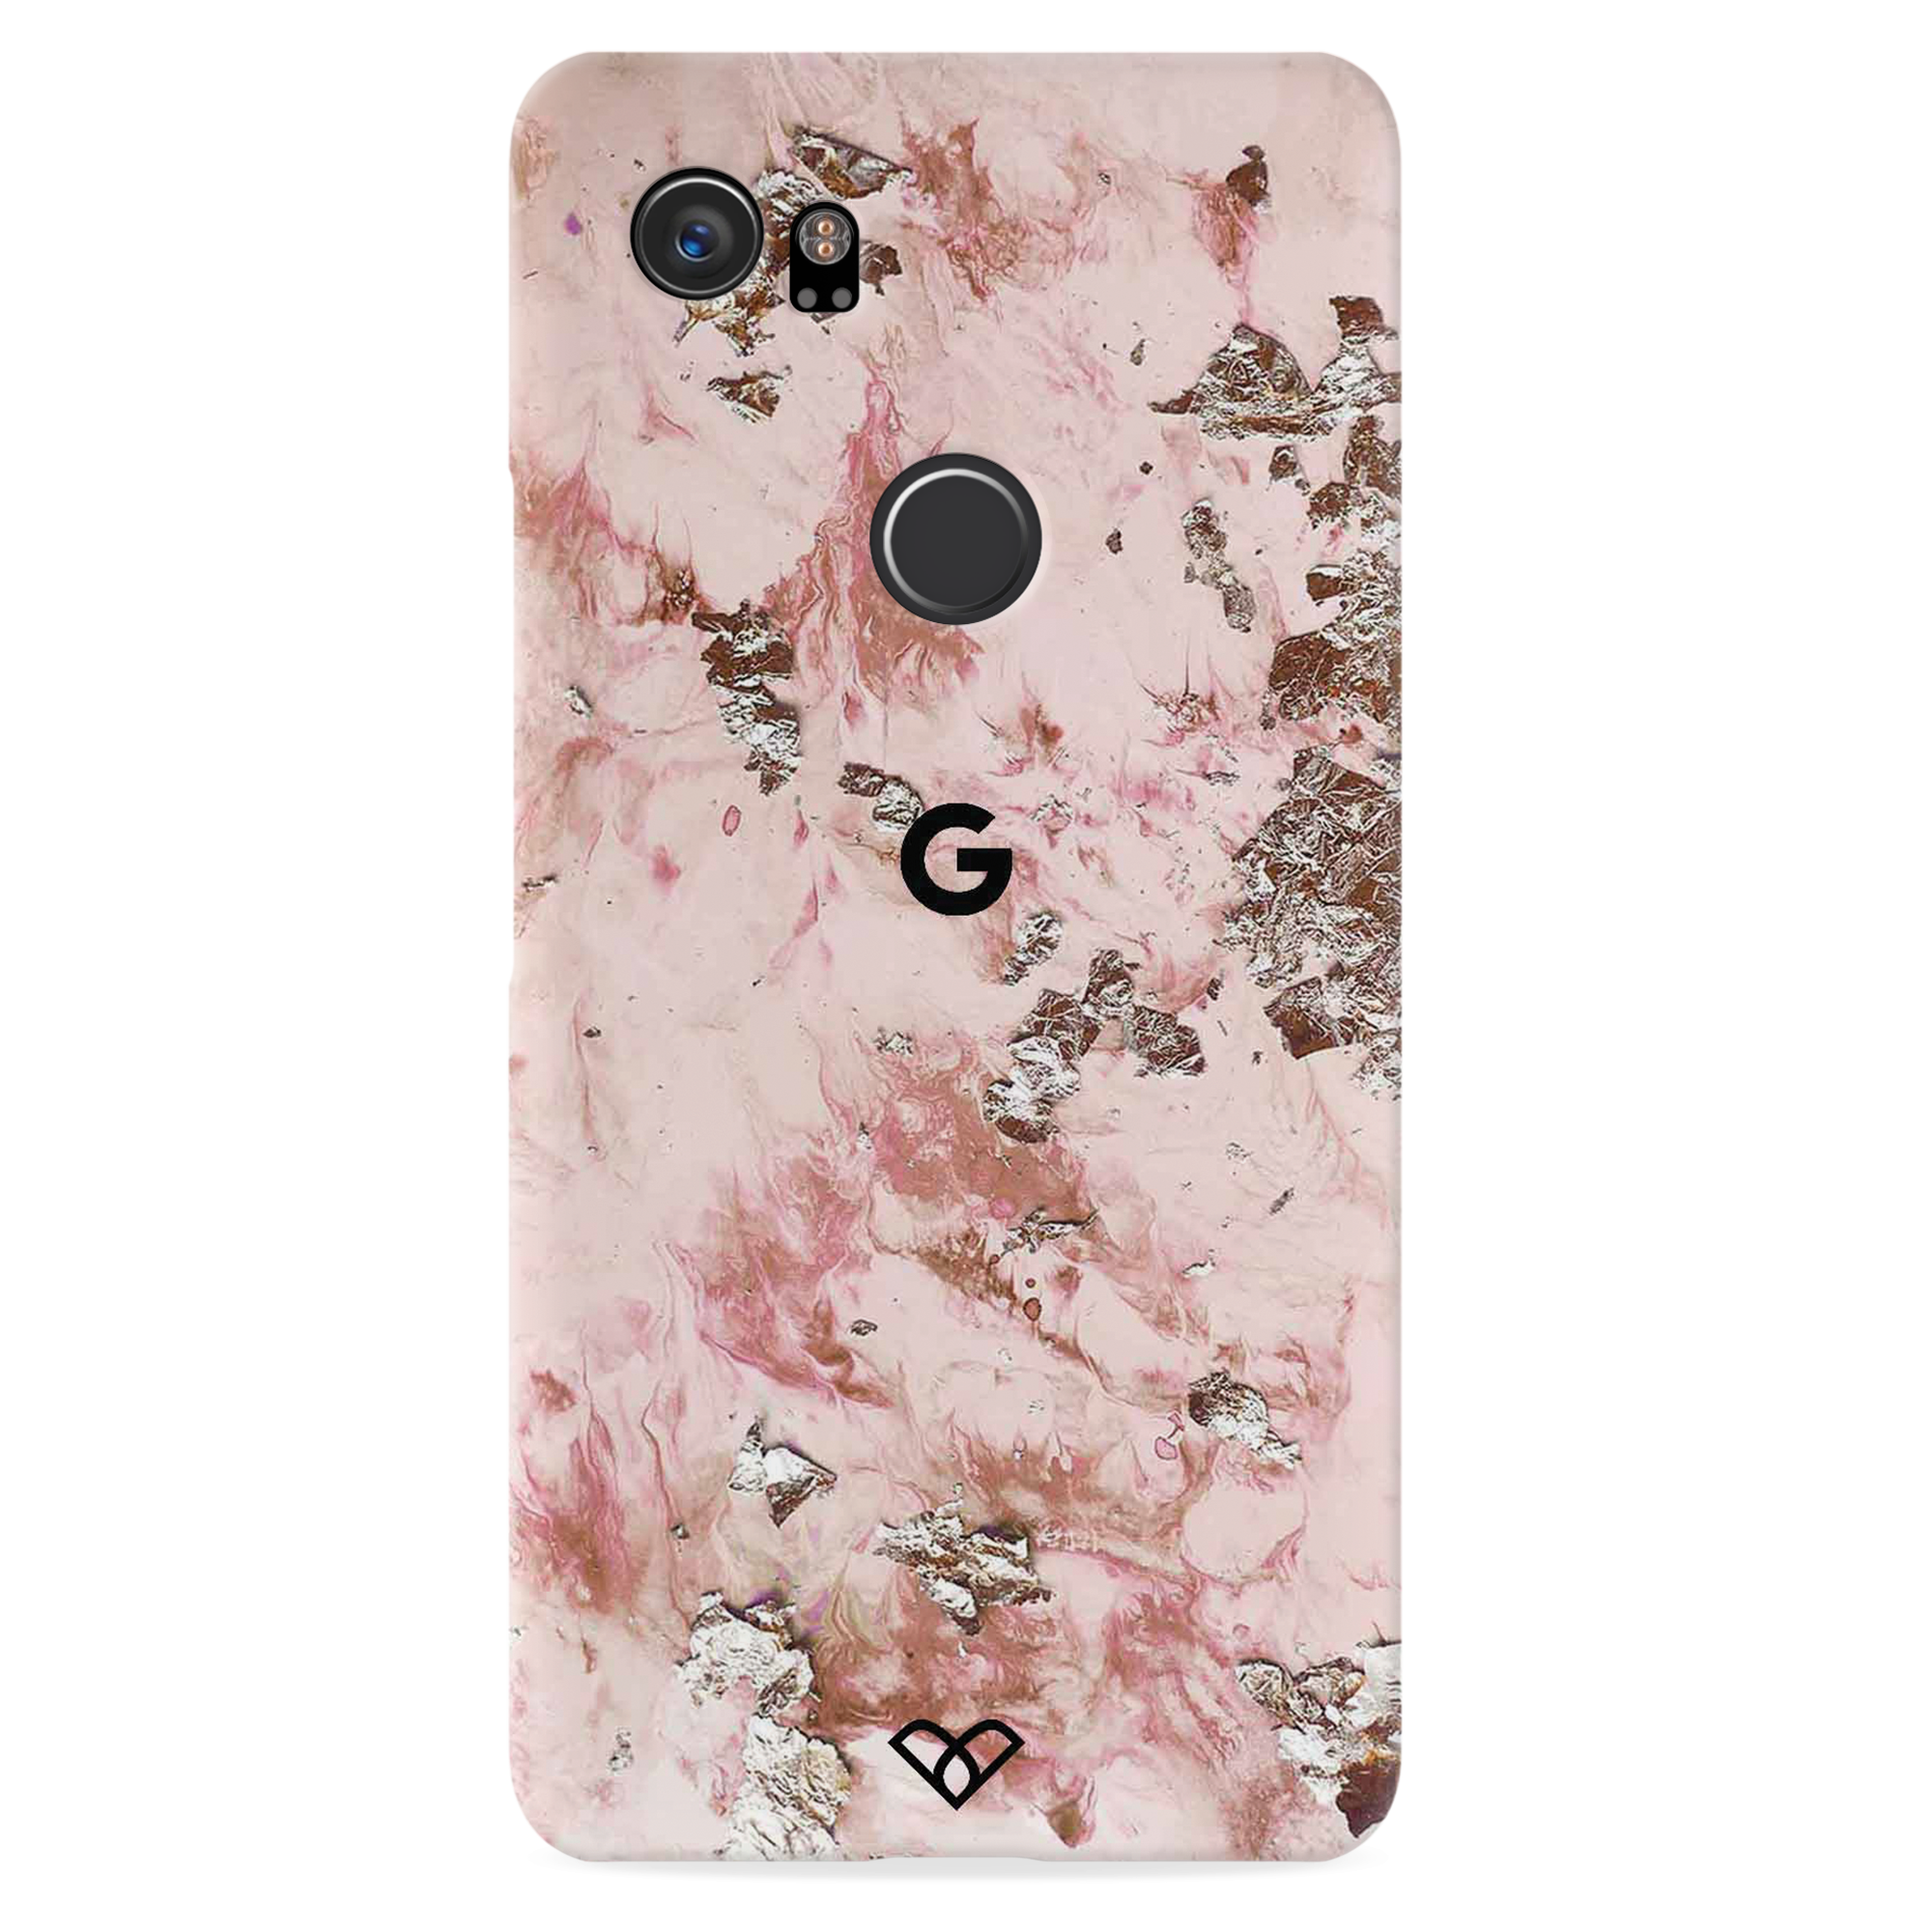 Pink Marble Slim Case And Cover For Pixel 2 XL